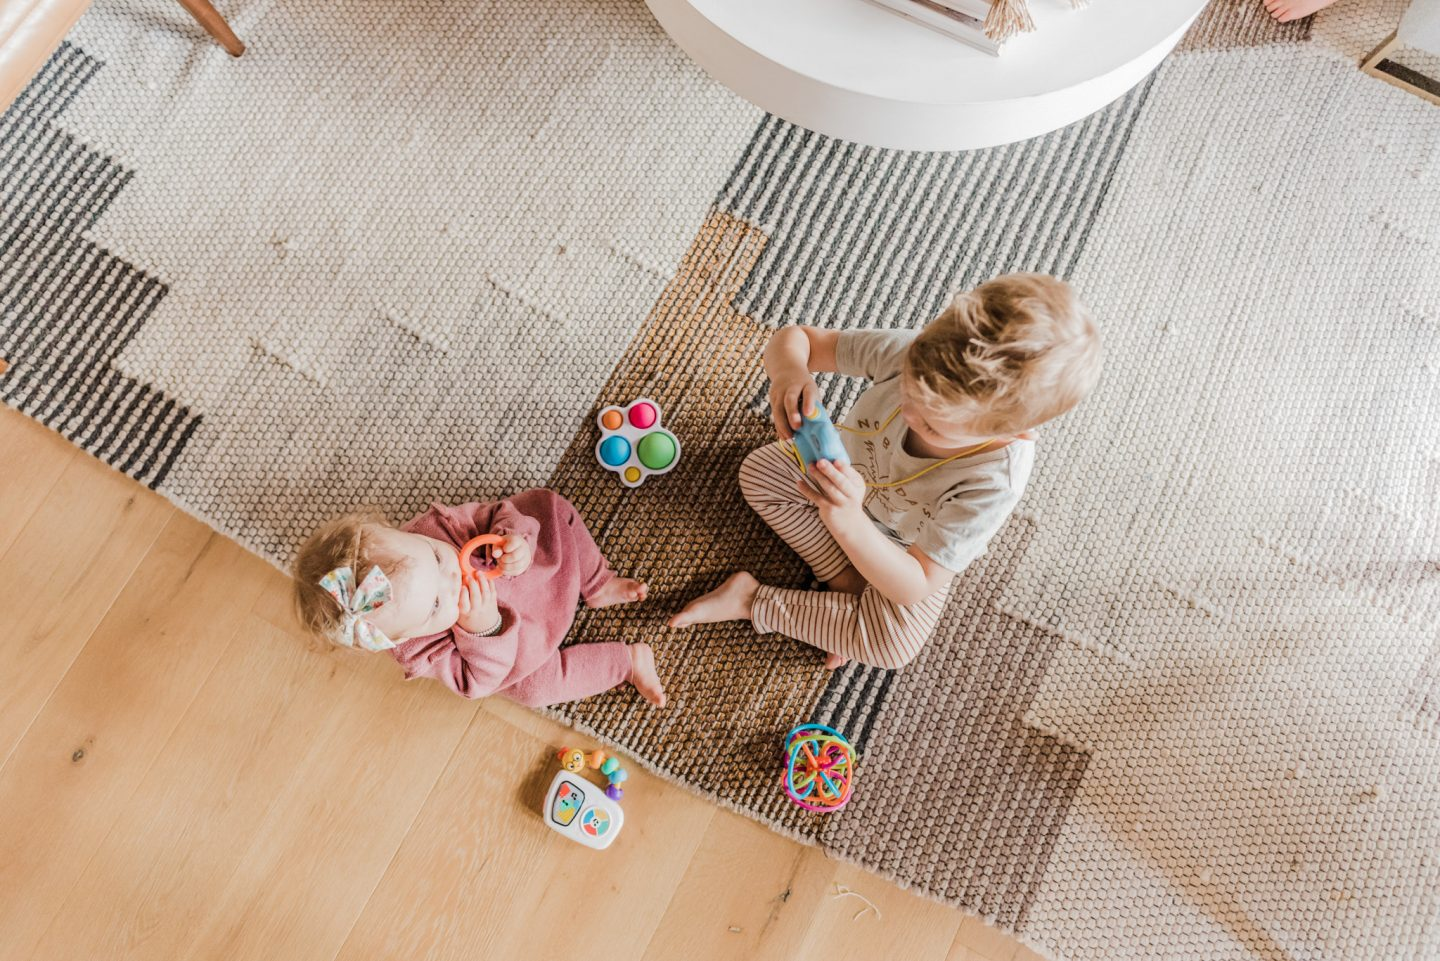 Easter Basket Gift Ideas by popular San Diego lifestyle blog, Navy Grace: image of a baby girl and her brother sitting on the floor and playing with toys.